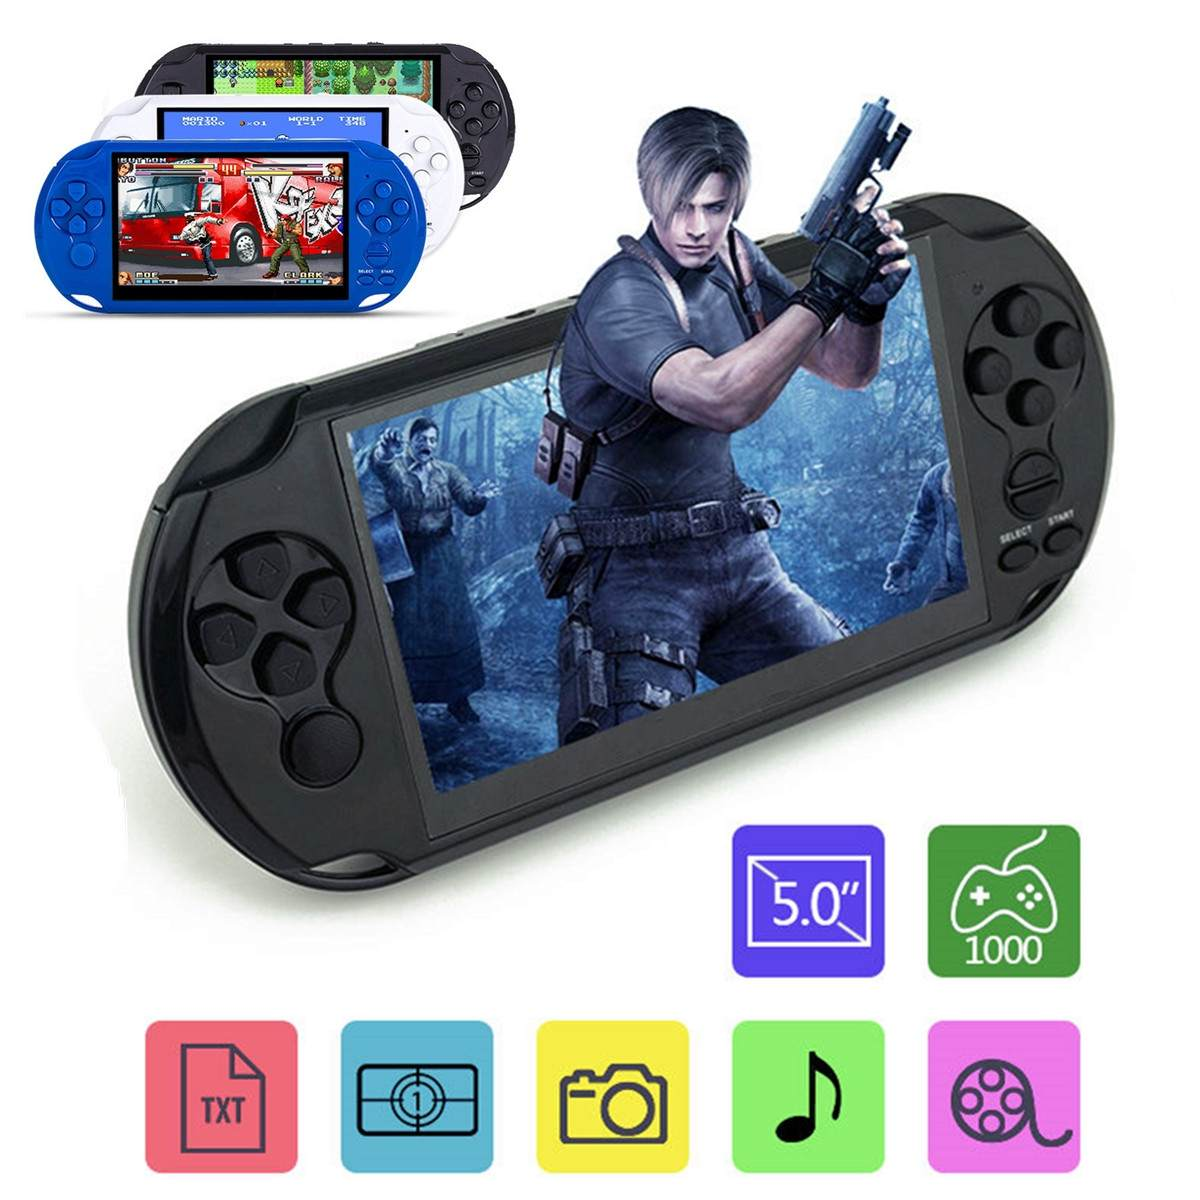 Video MP3 Player X9 Rechargeable 5.0 inch 8G Handheld Retro Game Console Camera DV Shooting Multi-languages Net 32/64 Bit